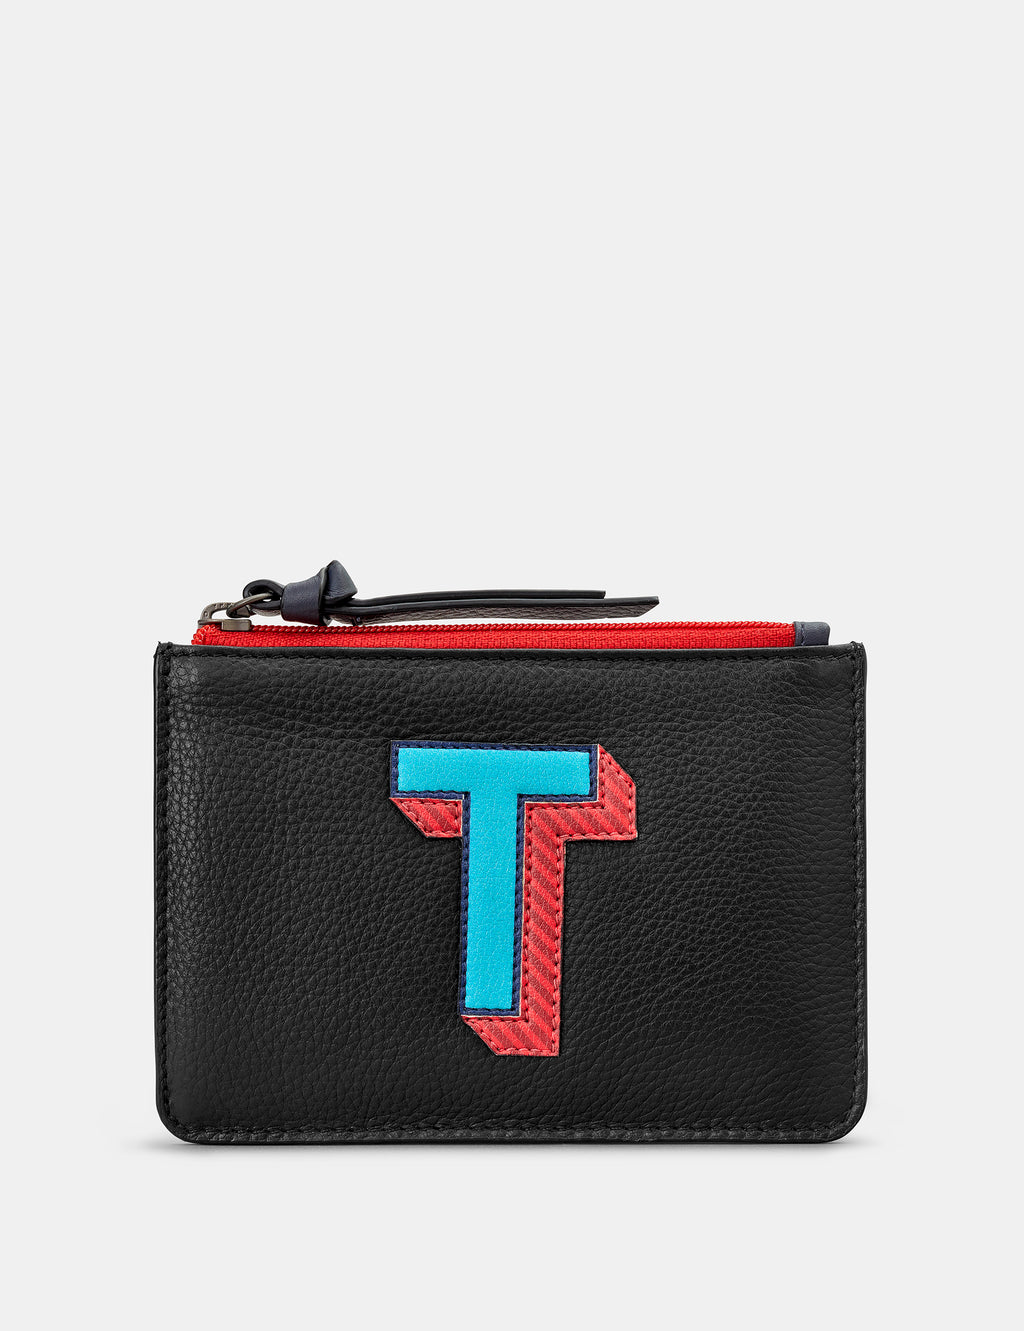 T Initials Black Leather Zip Top Purse